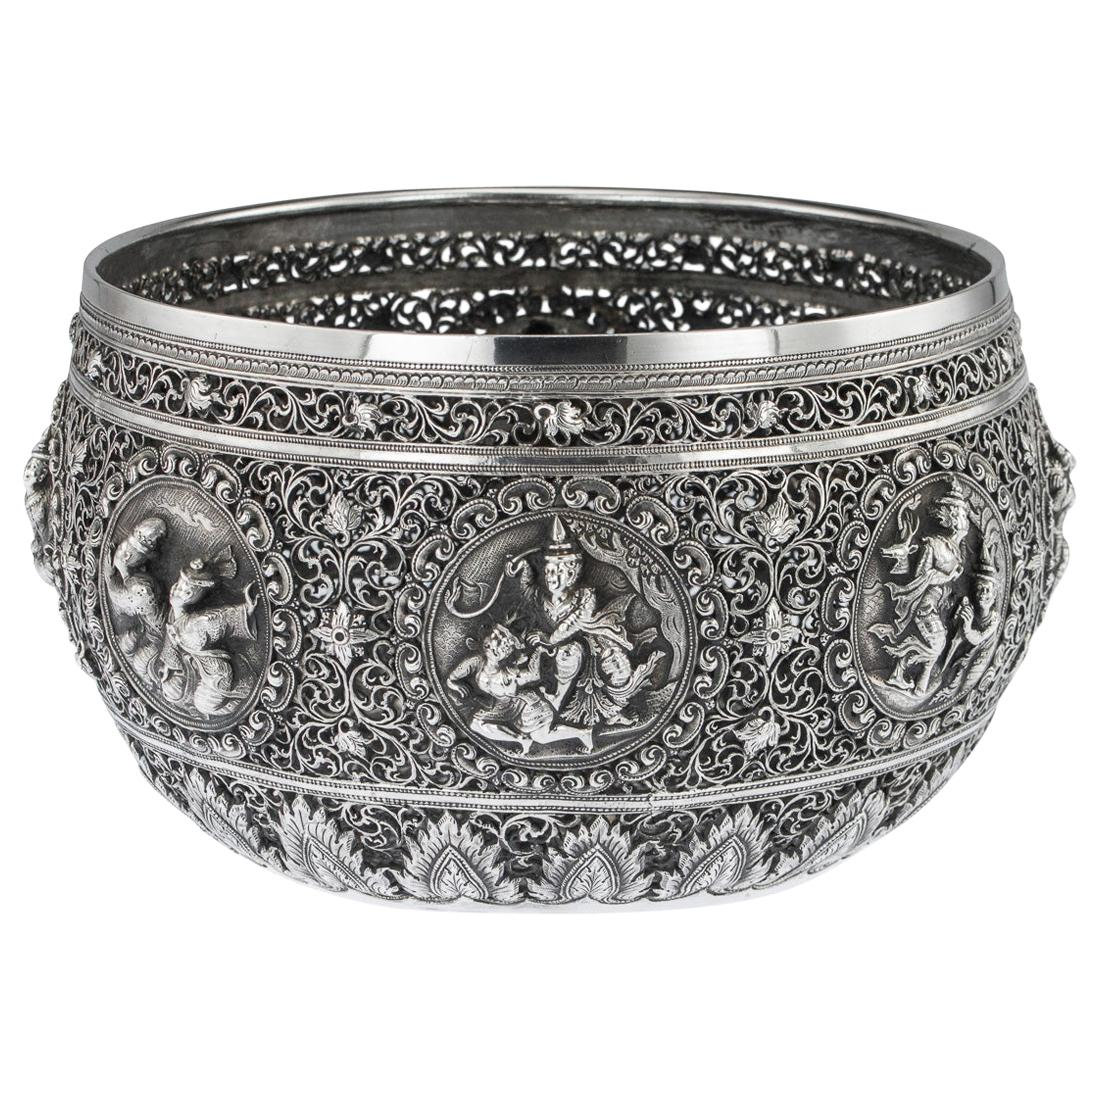 19th Century Exceptional Burmese Solid Silver Handcrafted Bowl, circa 1890